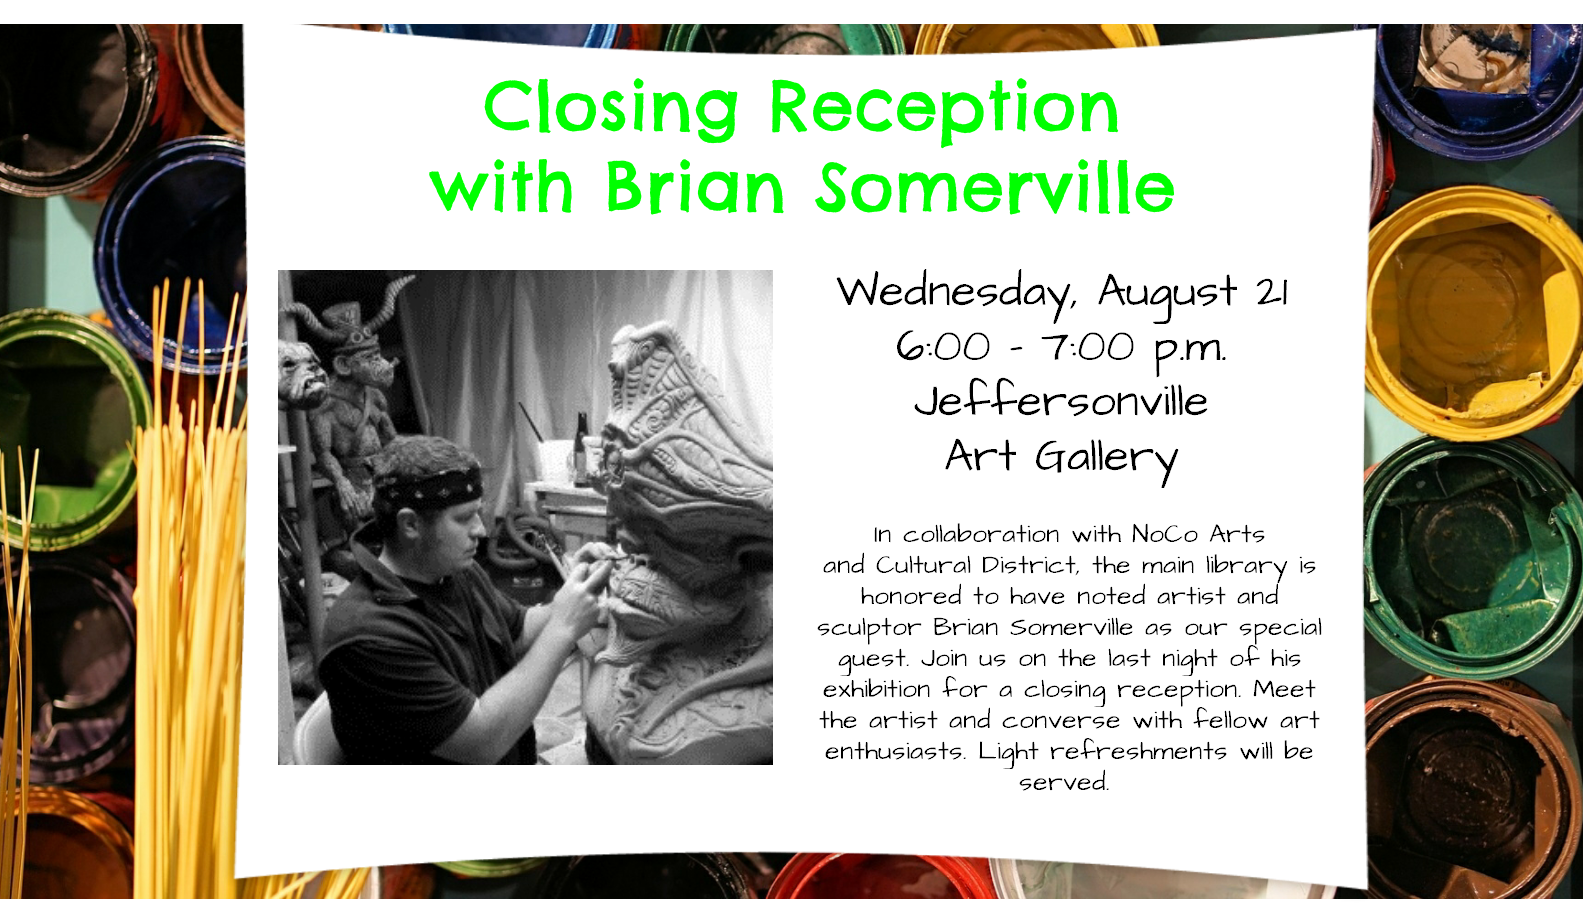 Flyer for Closing Reception for the art exhibit of Brian Somerville, held on August 21st, 2019